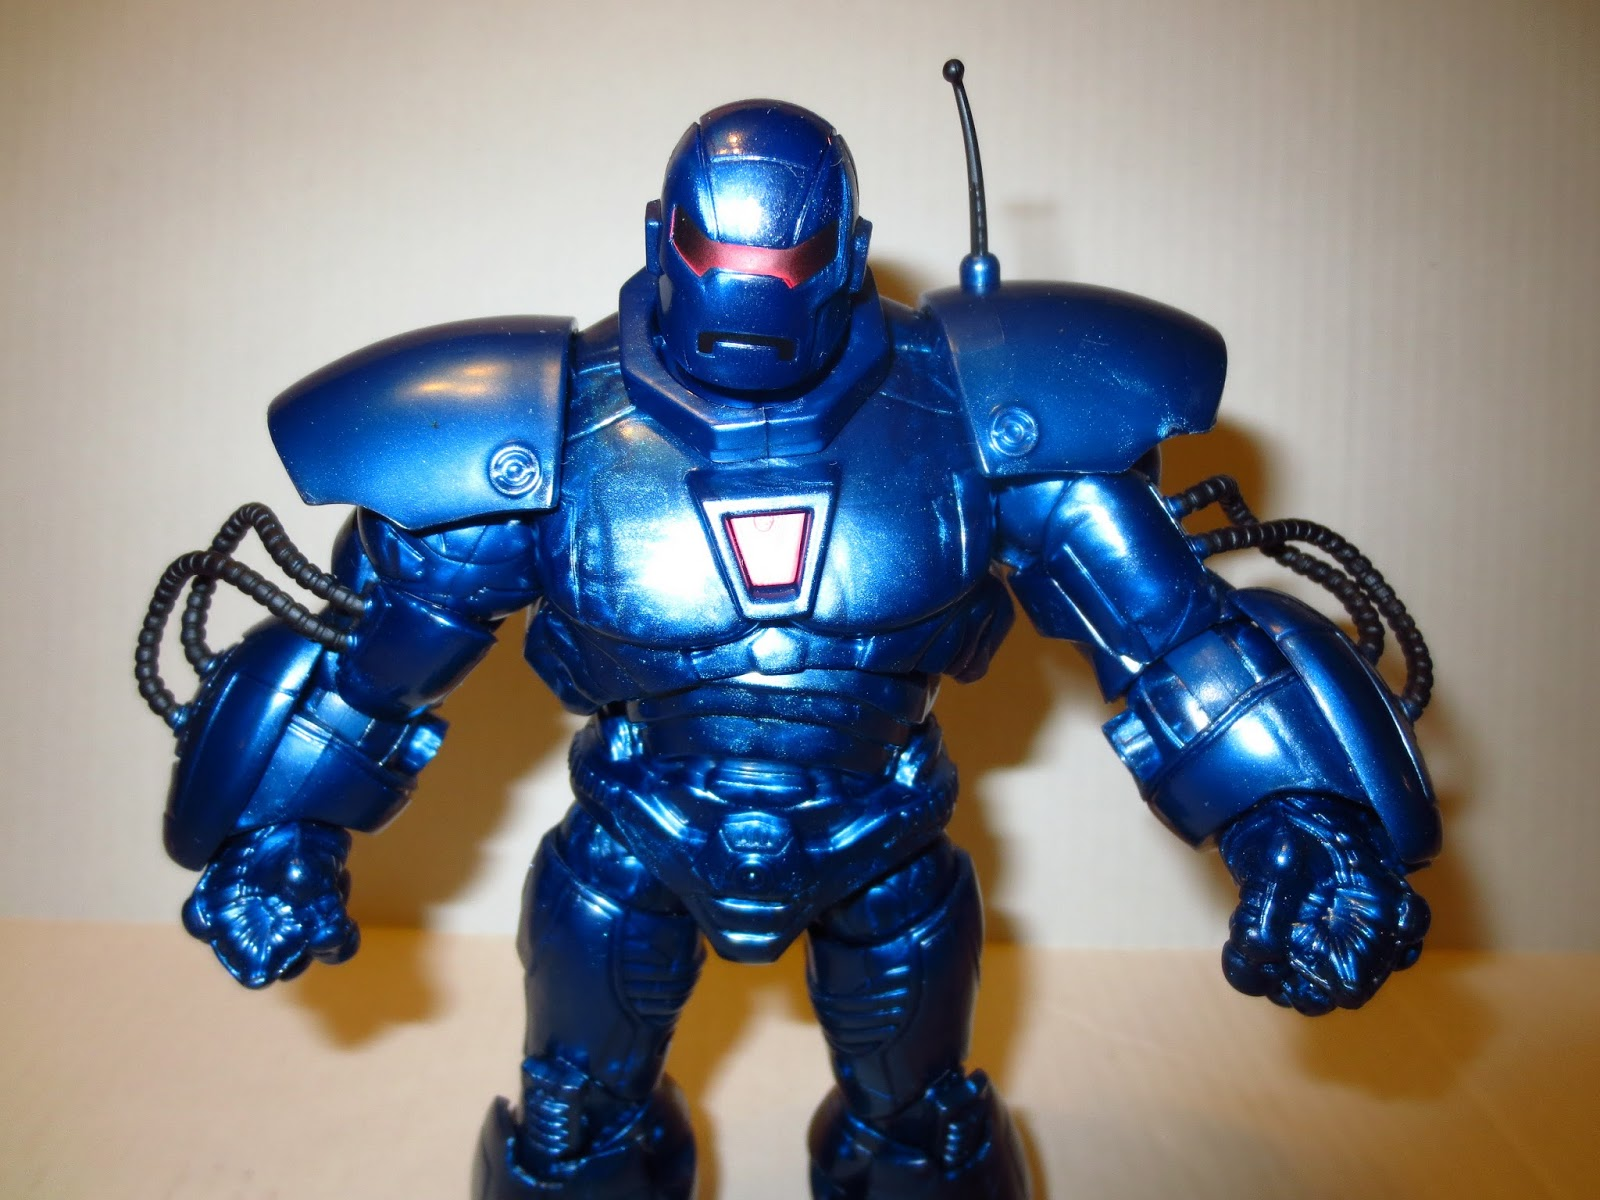 Iron Monger Stands Just a